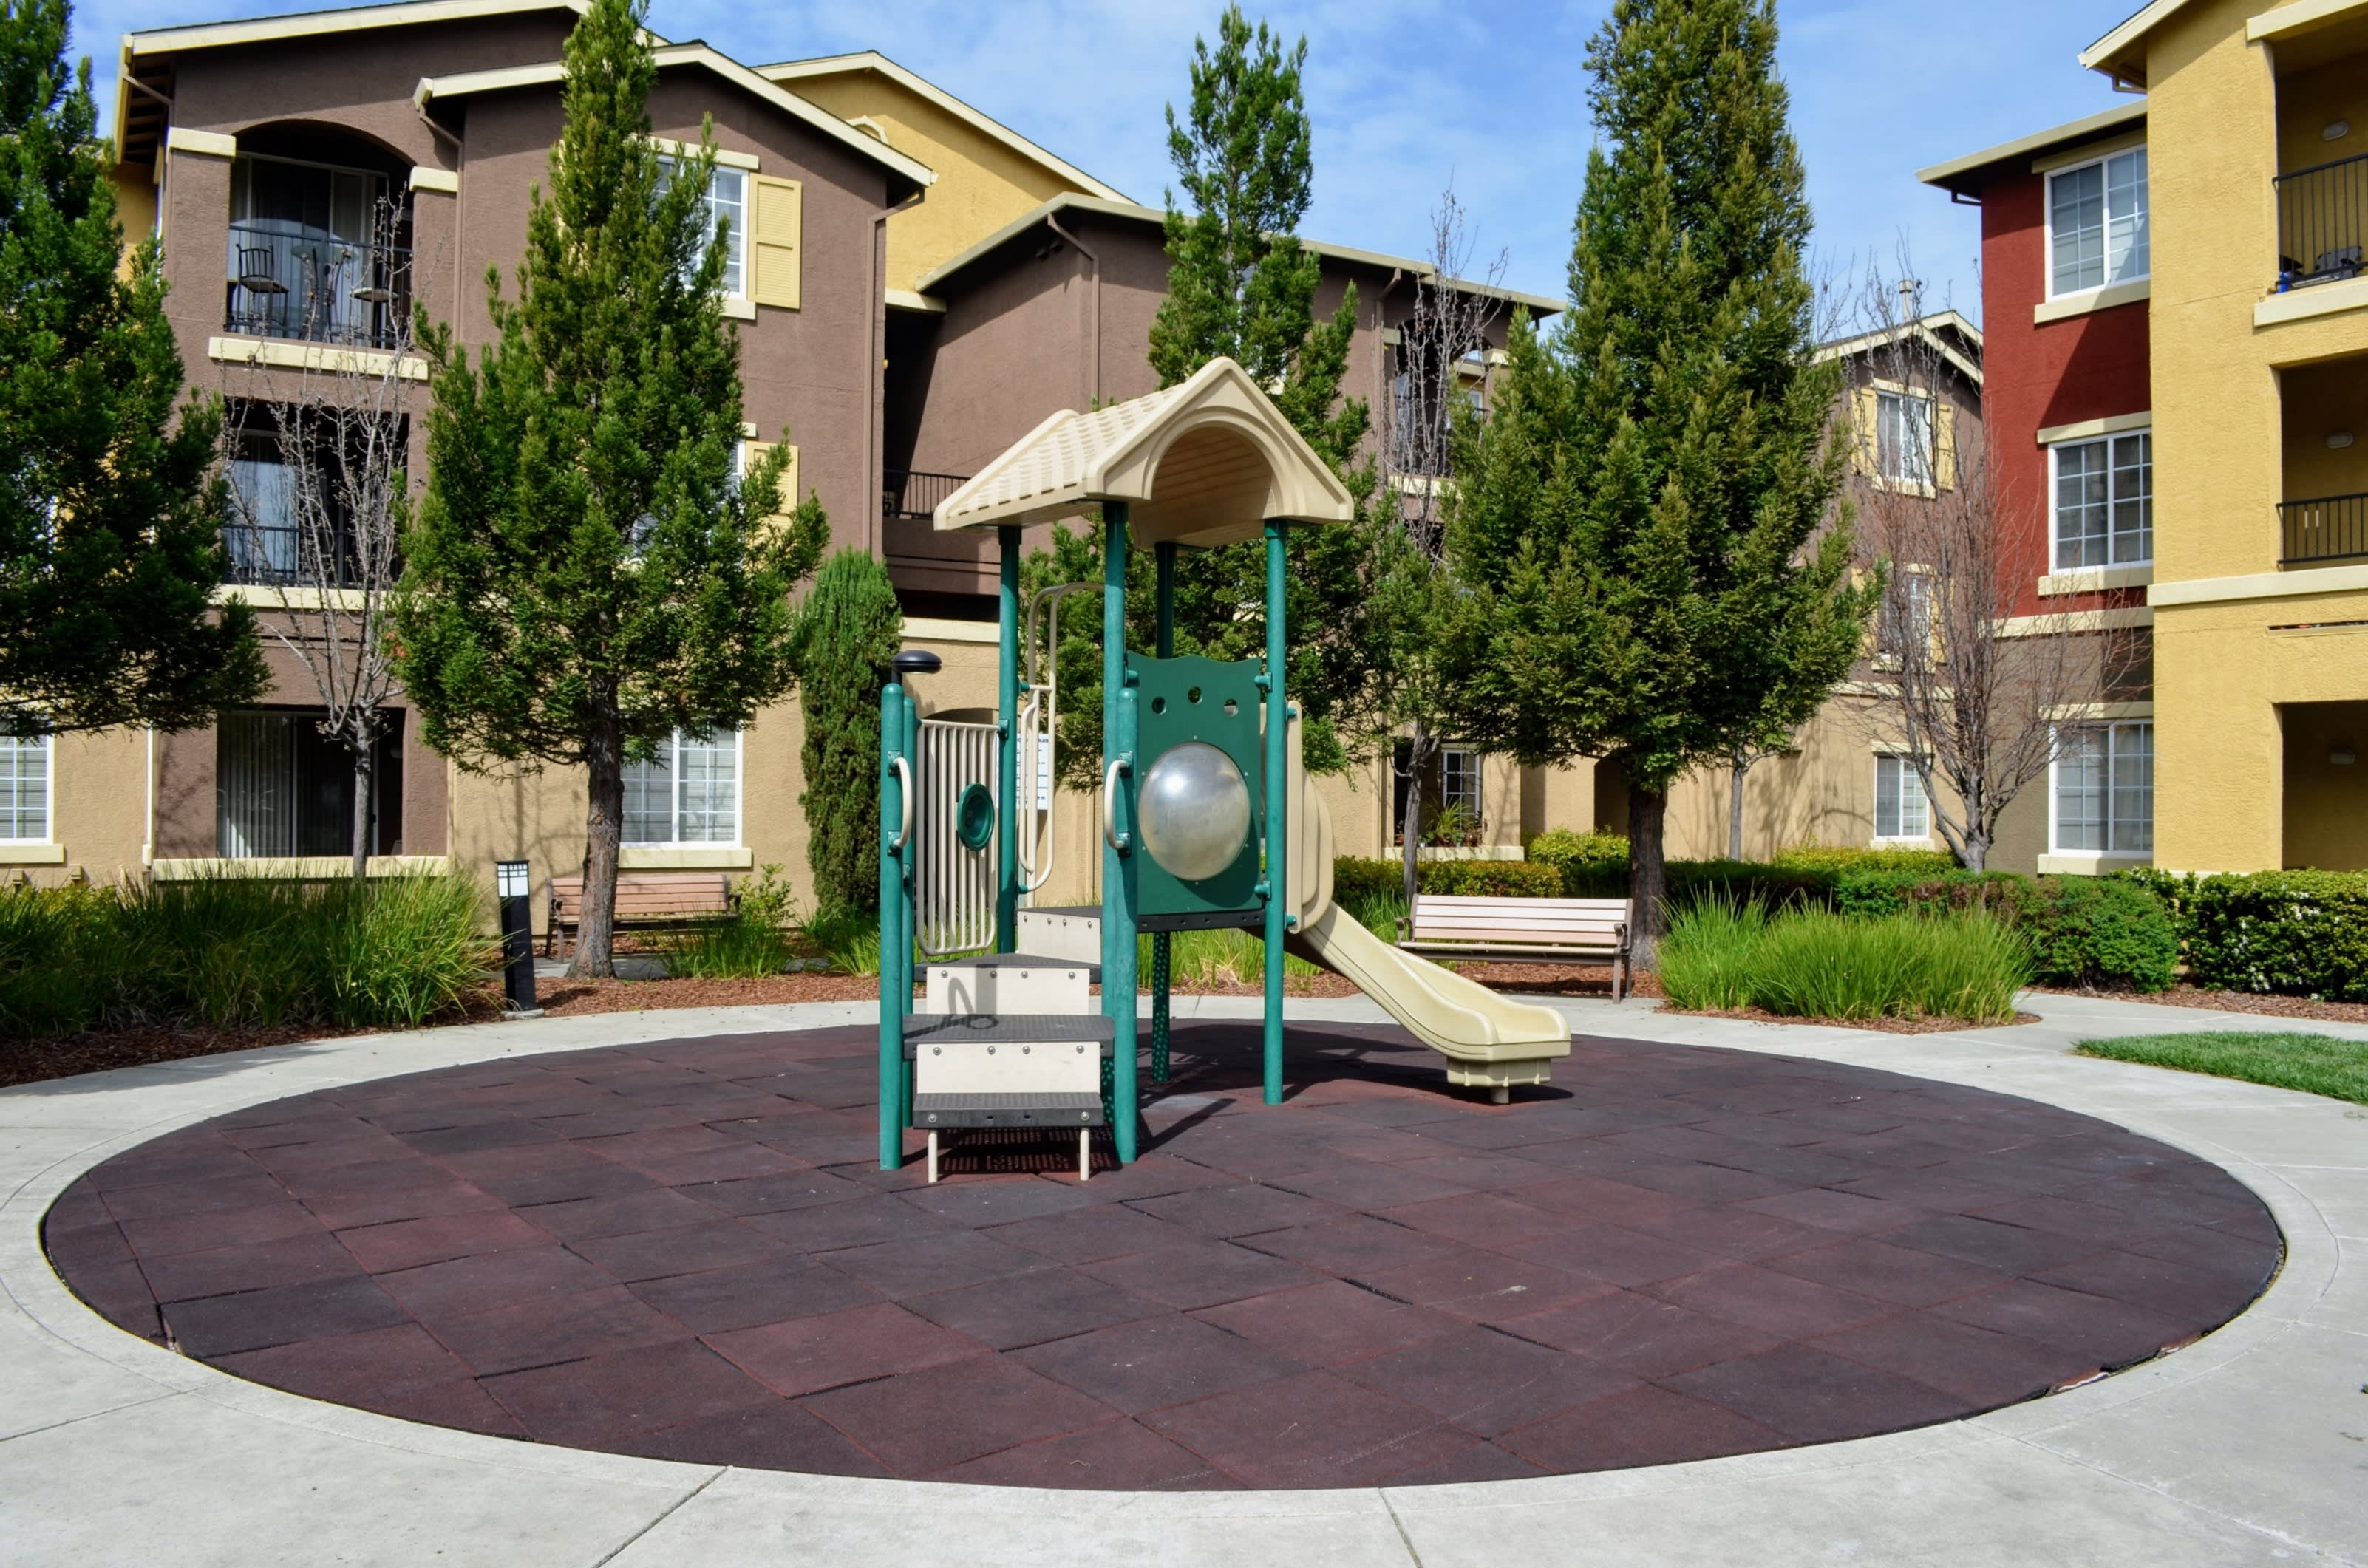 Fun Stop Tot Lot at Sterling Village Apartment Homes, 88 Valle Vista Avenue, Vallejo